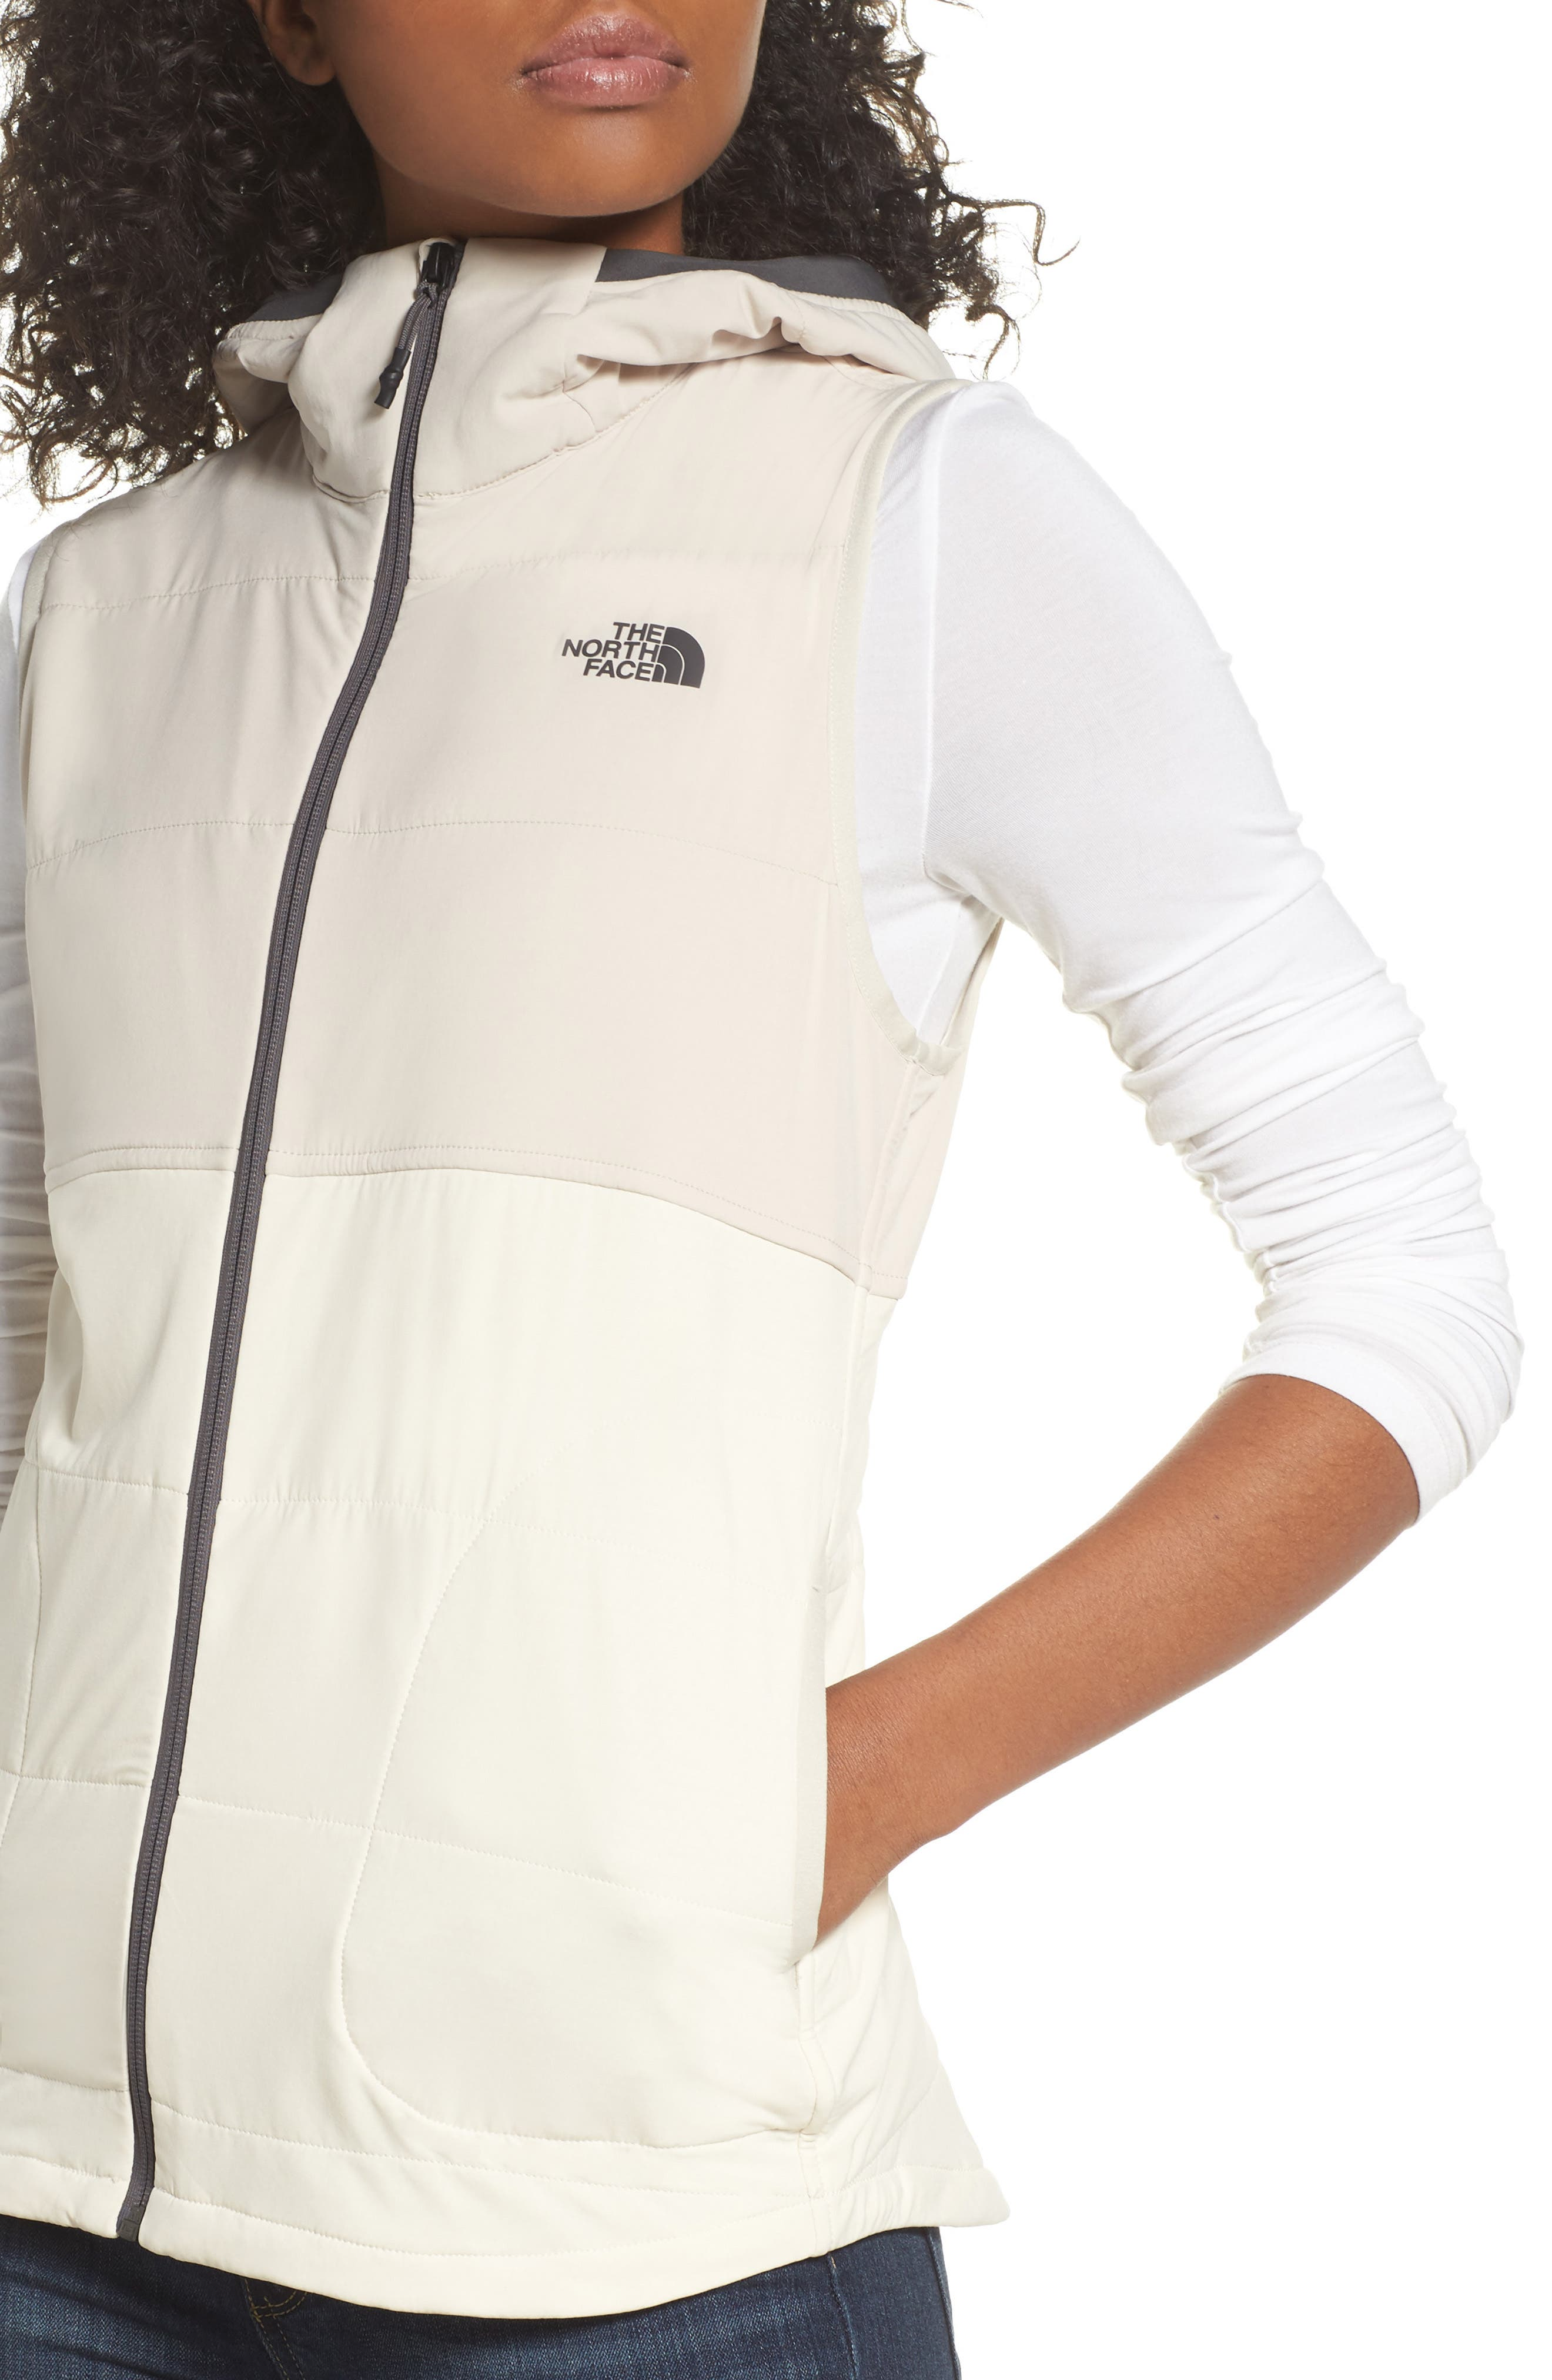 Mountain Sweatshirt Insulated Hooded Vest,                             Alternate thumbnail 17, color,